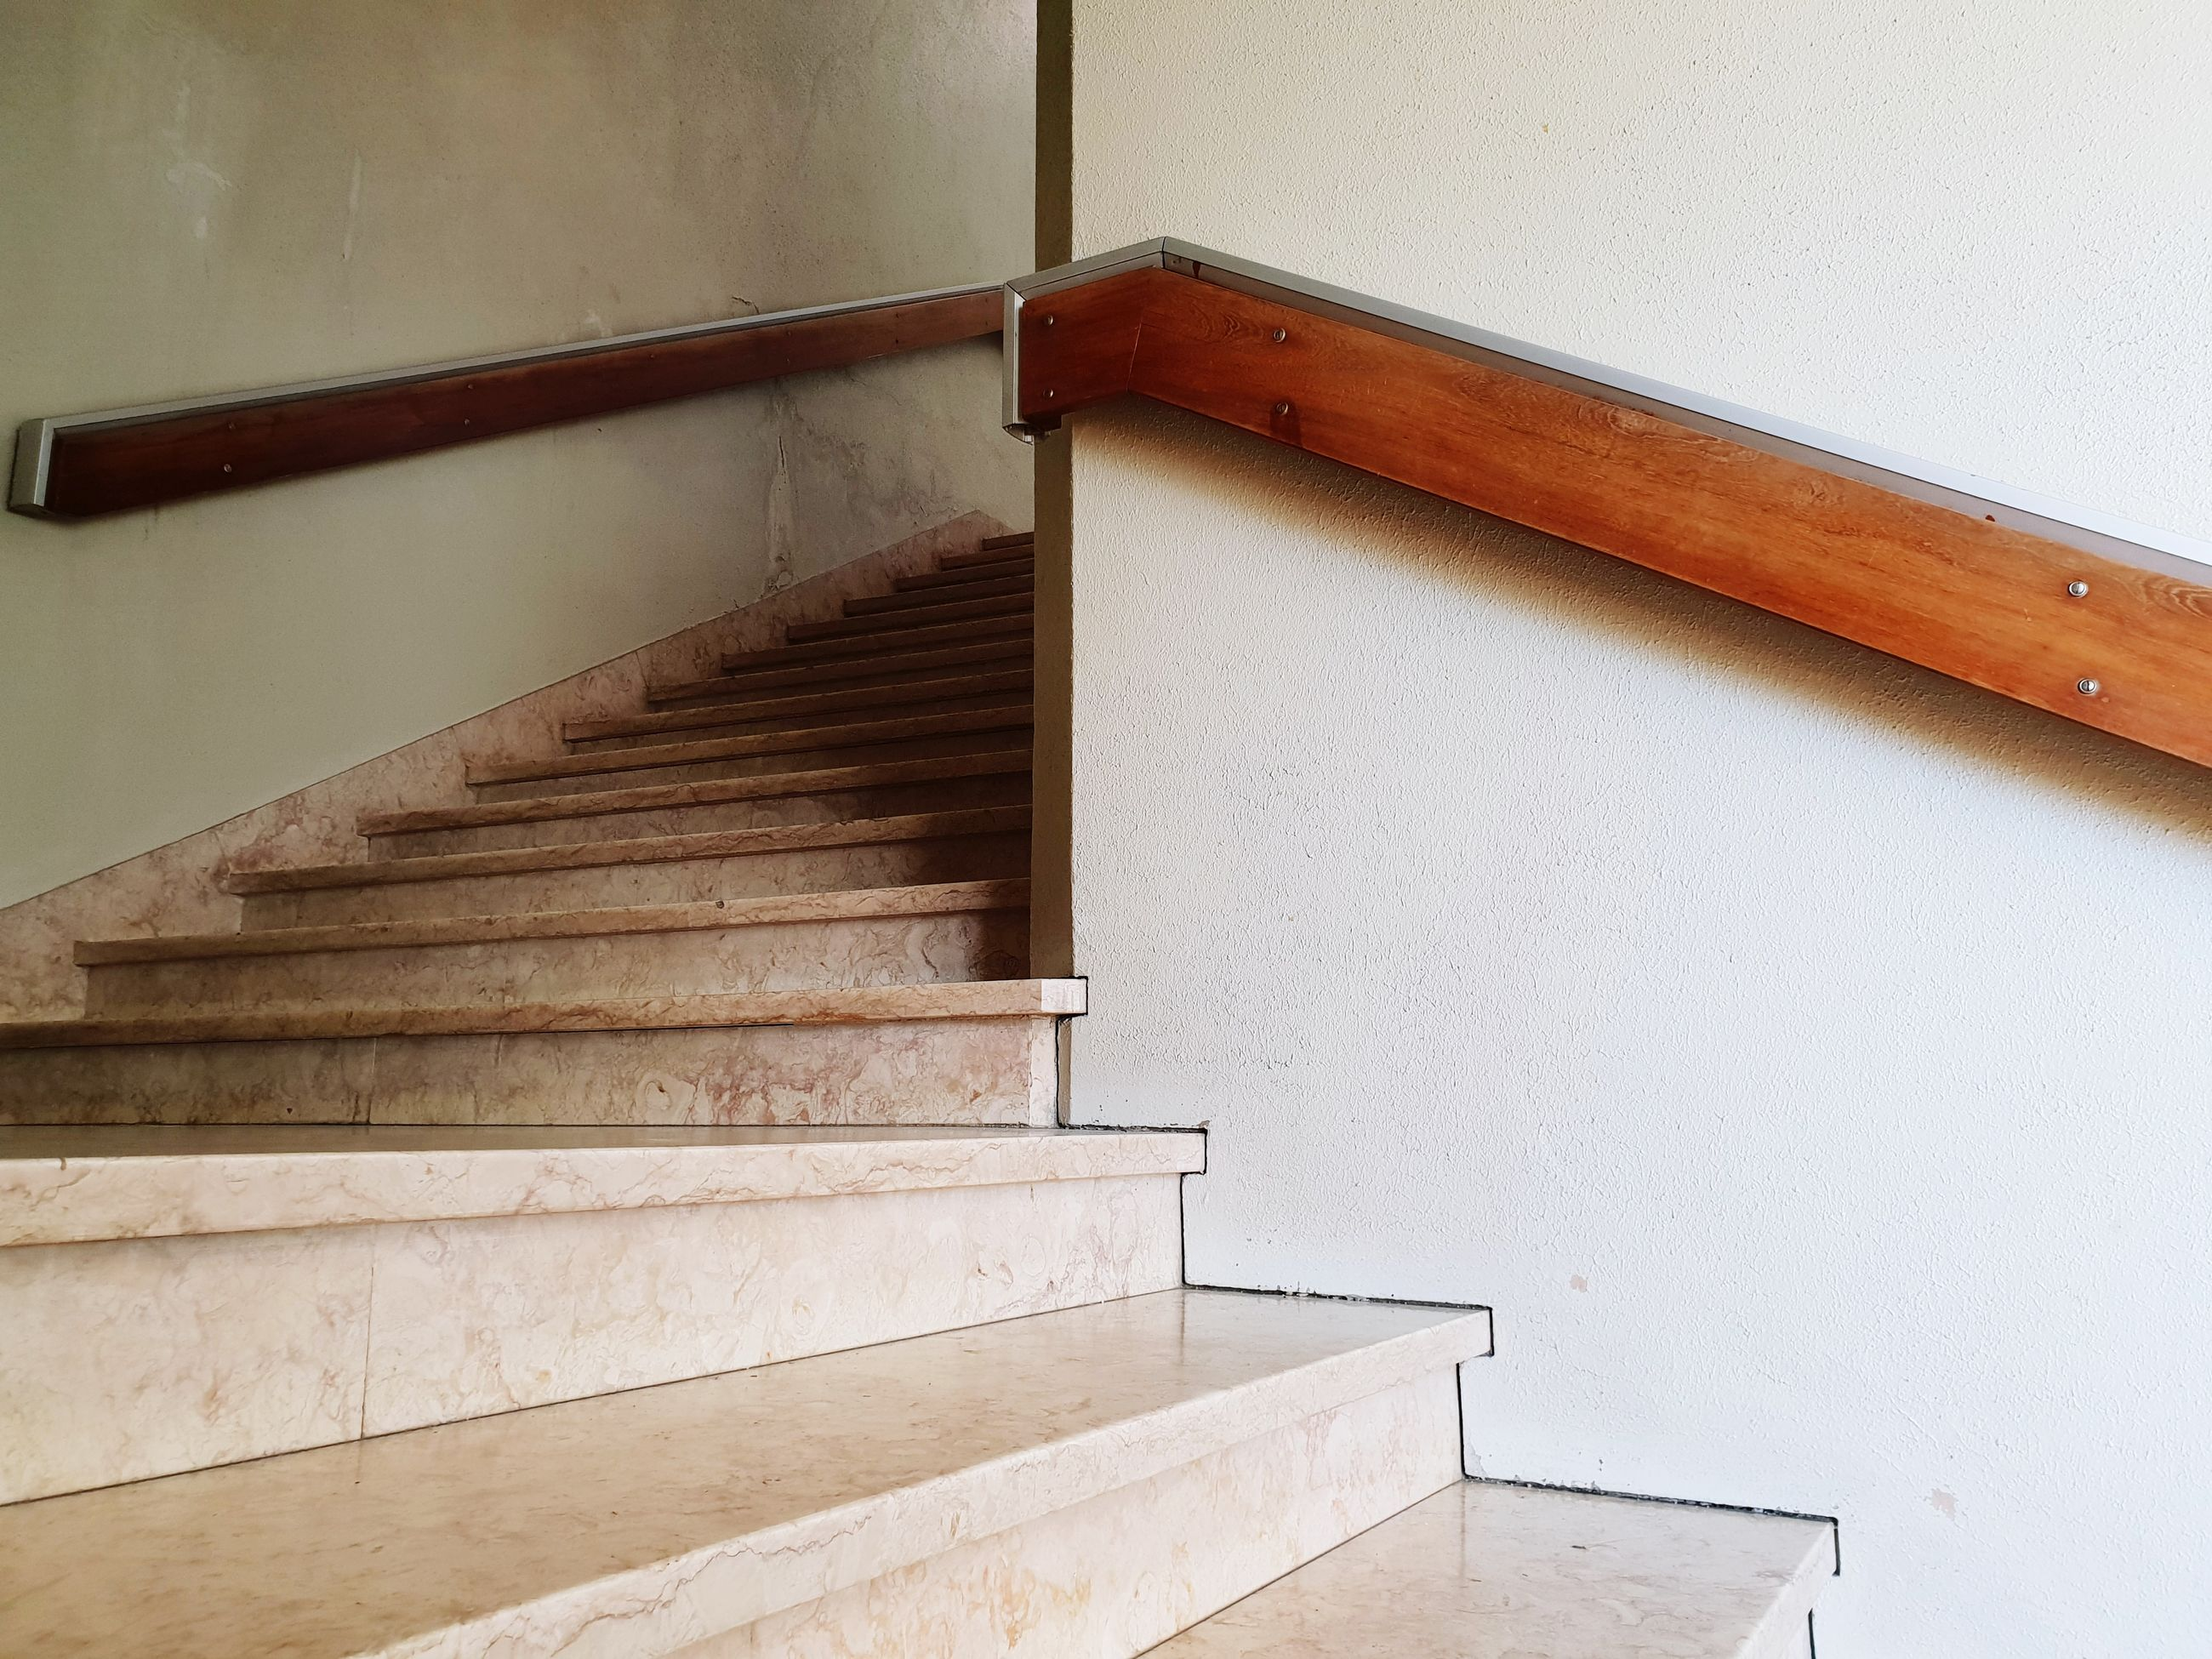 Low angle view of steps in building